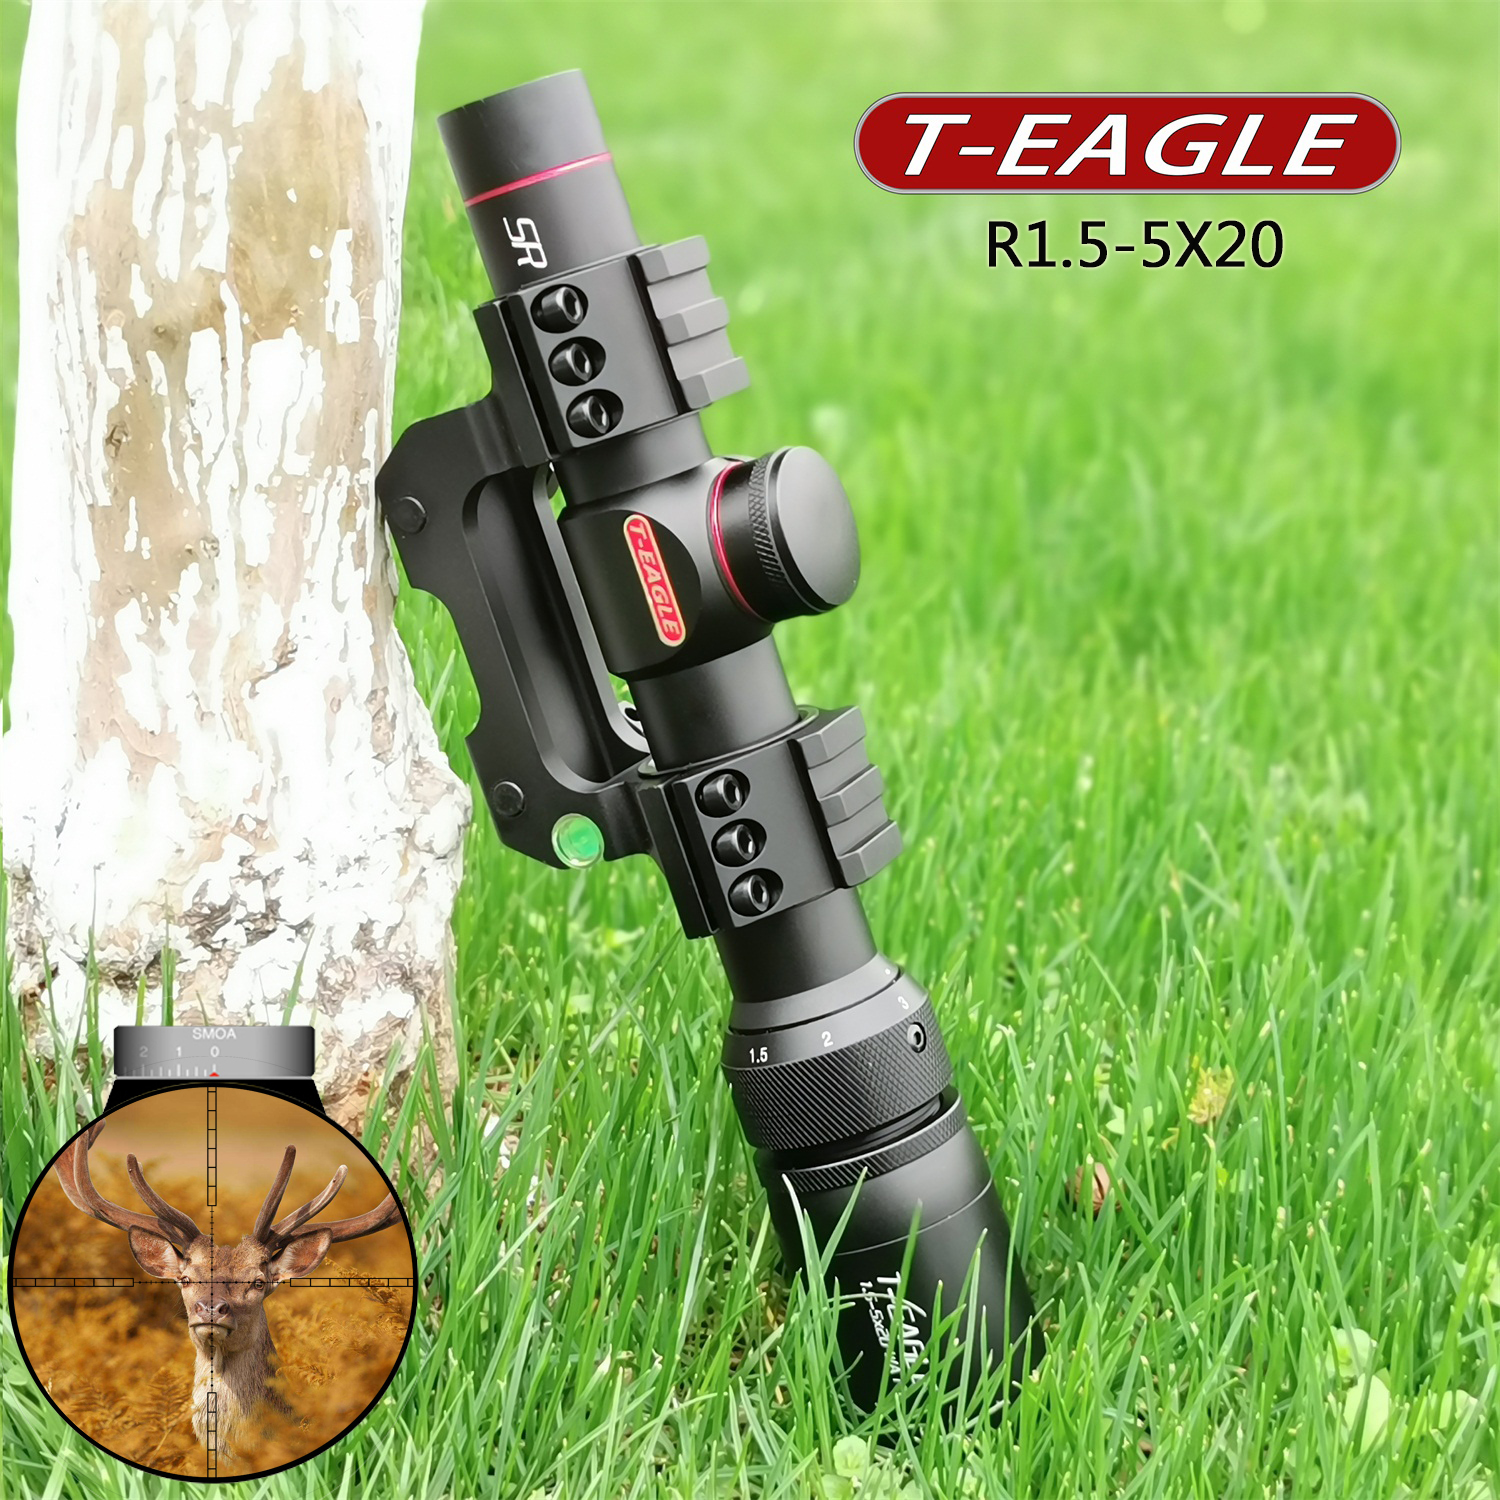 Teagle R1.5-5X20 Tactische Riflesscope Sniper Hunting Optics Riflescopes Airsoftsports Shock Proof Grote Vision Rifle Scope